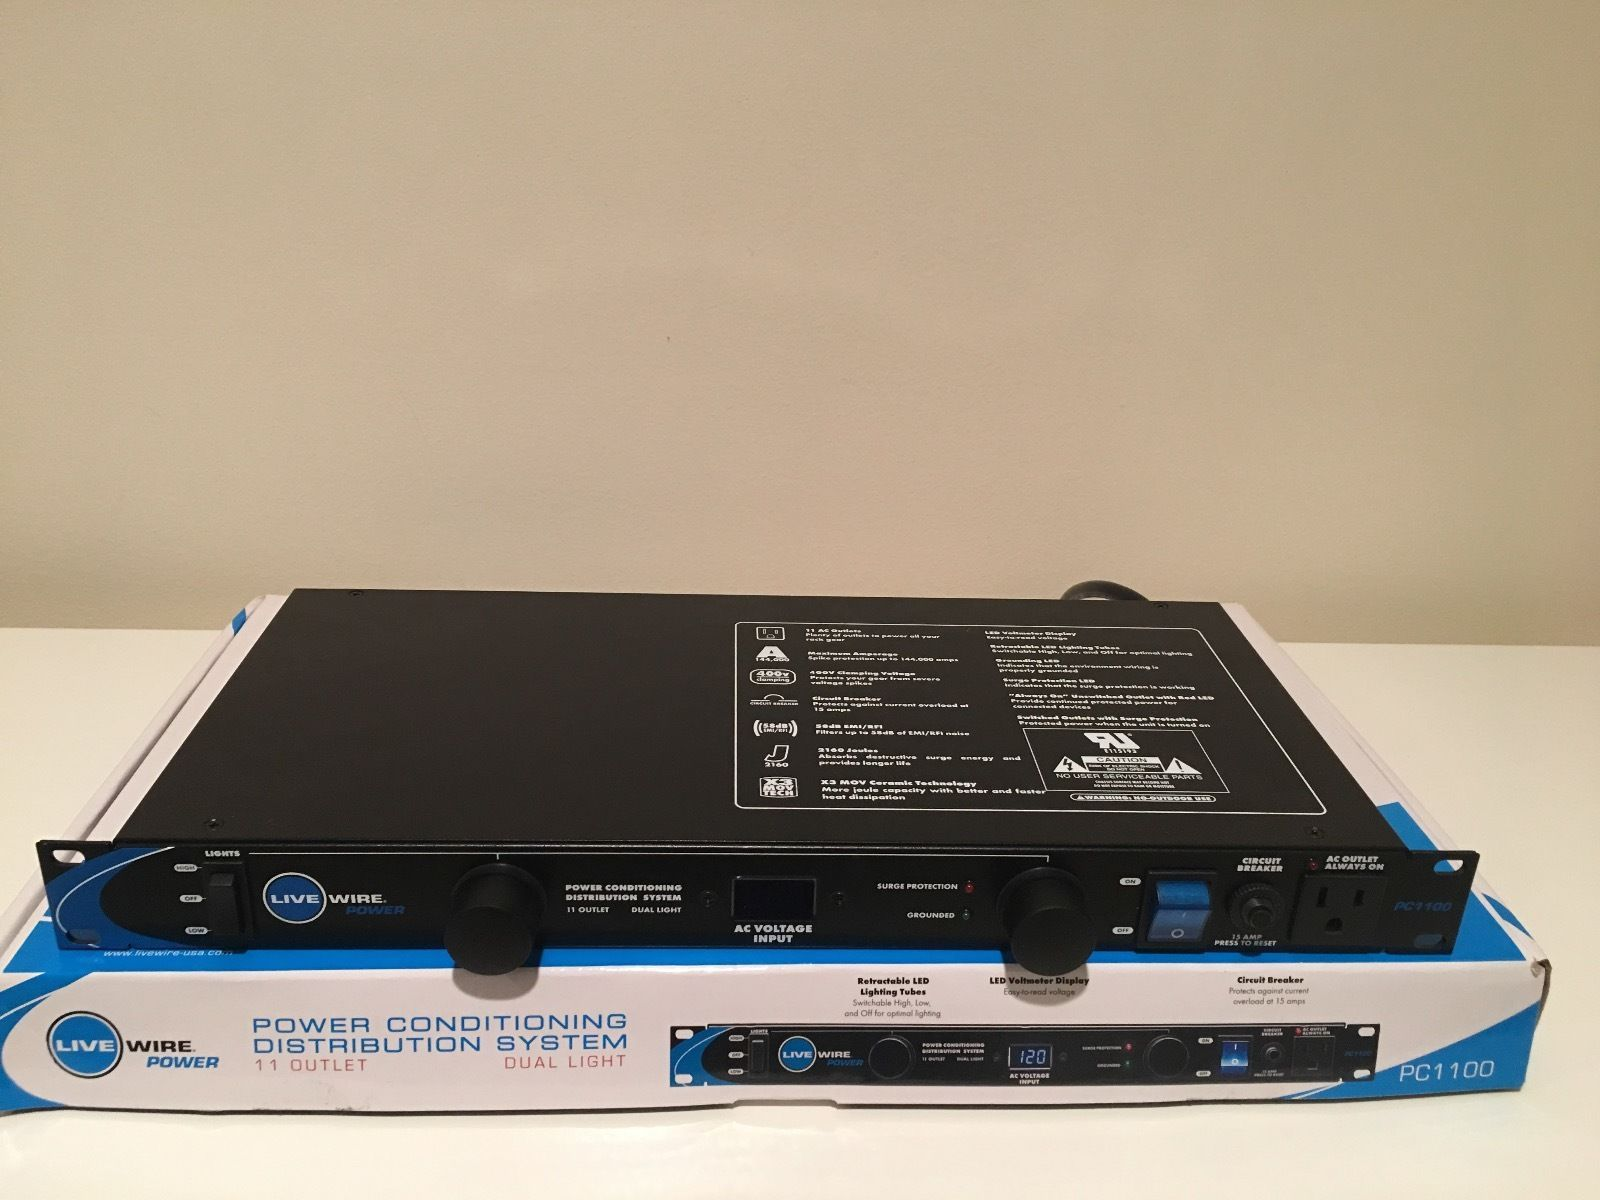 cool Live Wire Power Conditioner and Distribution System 11-outlet ...